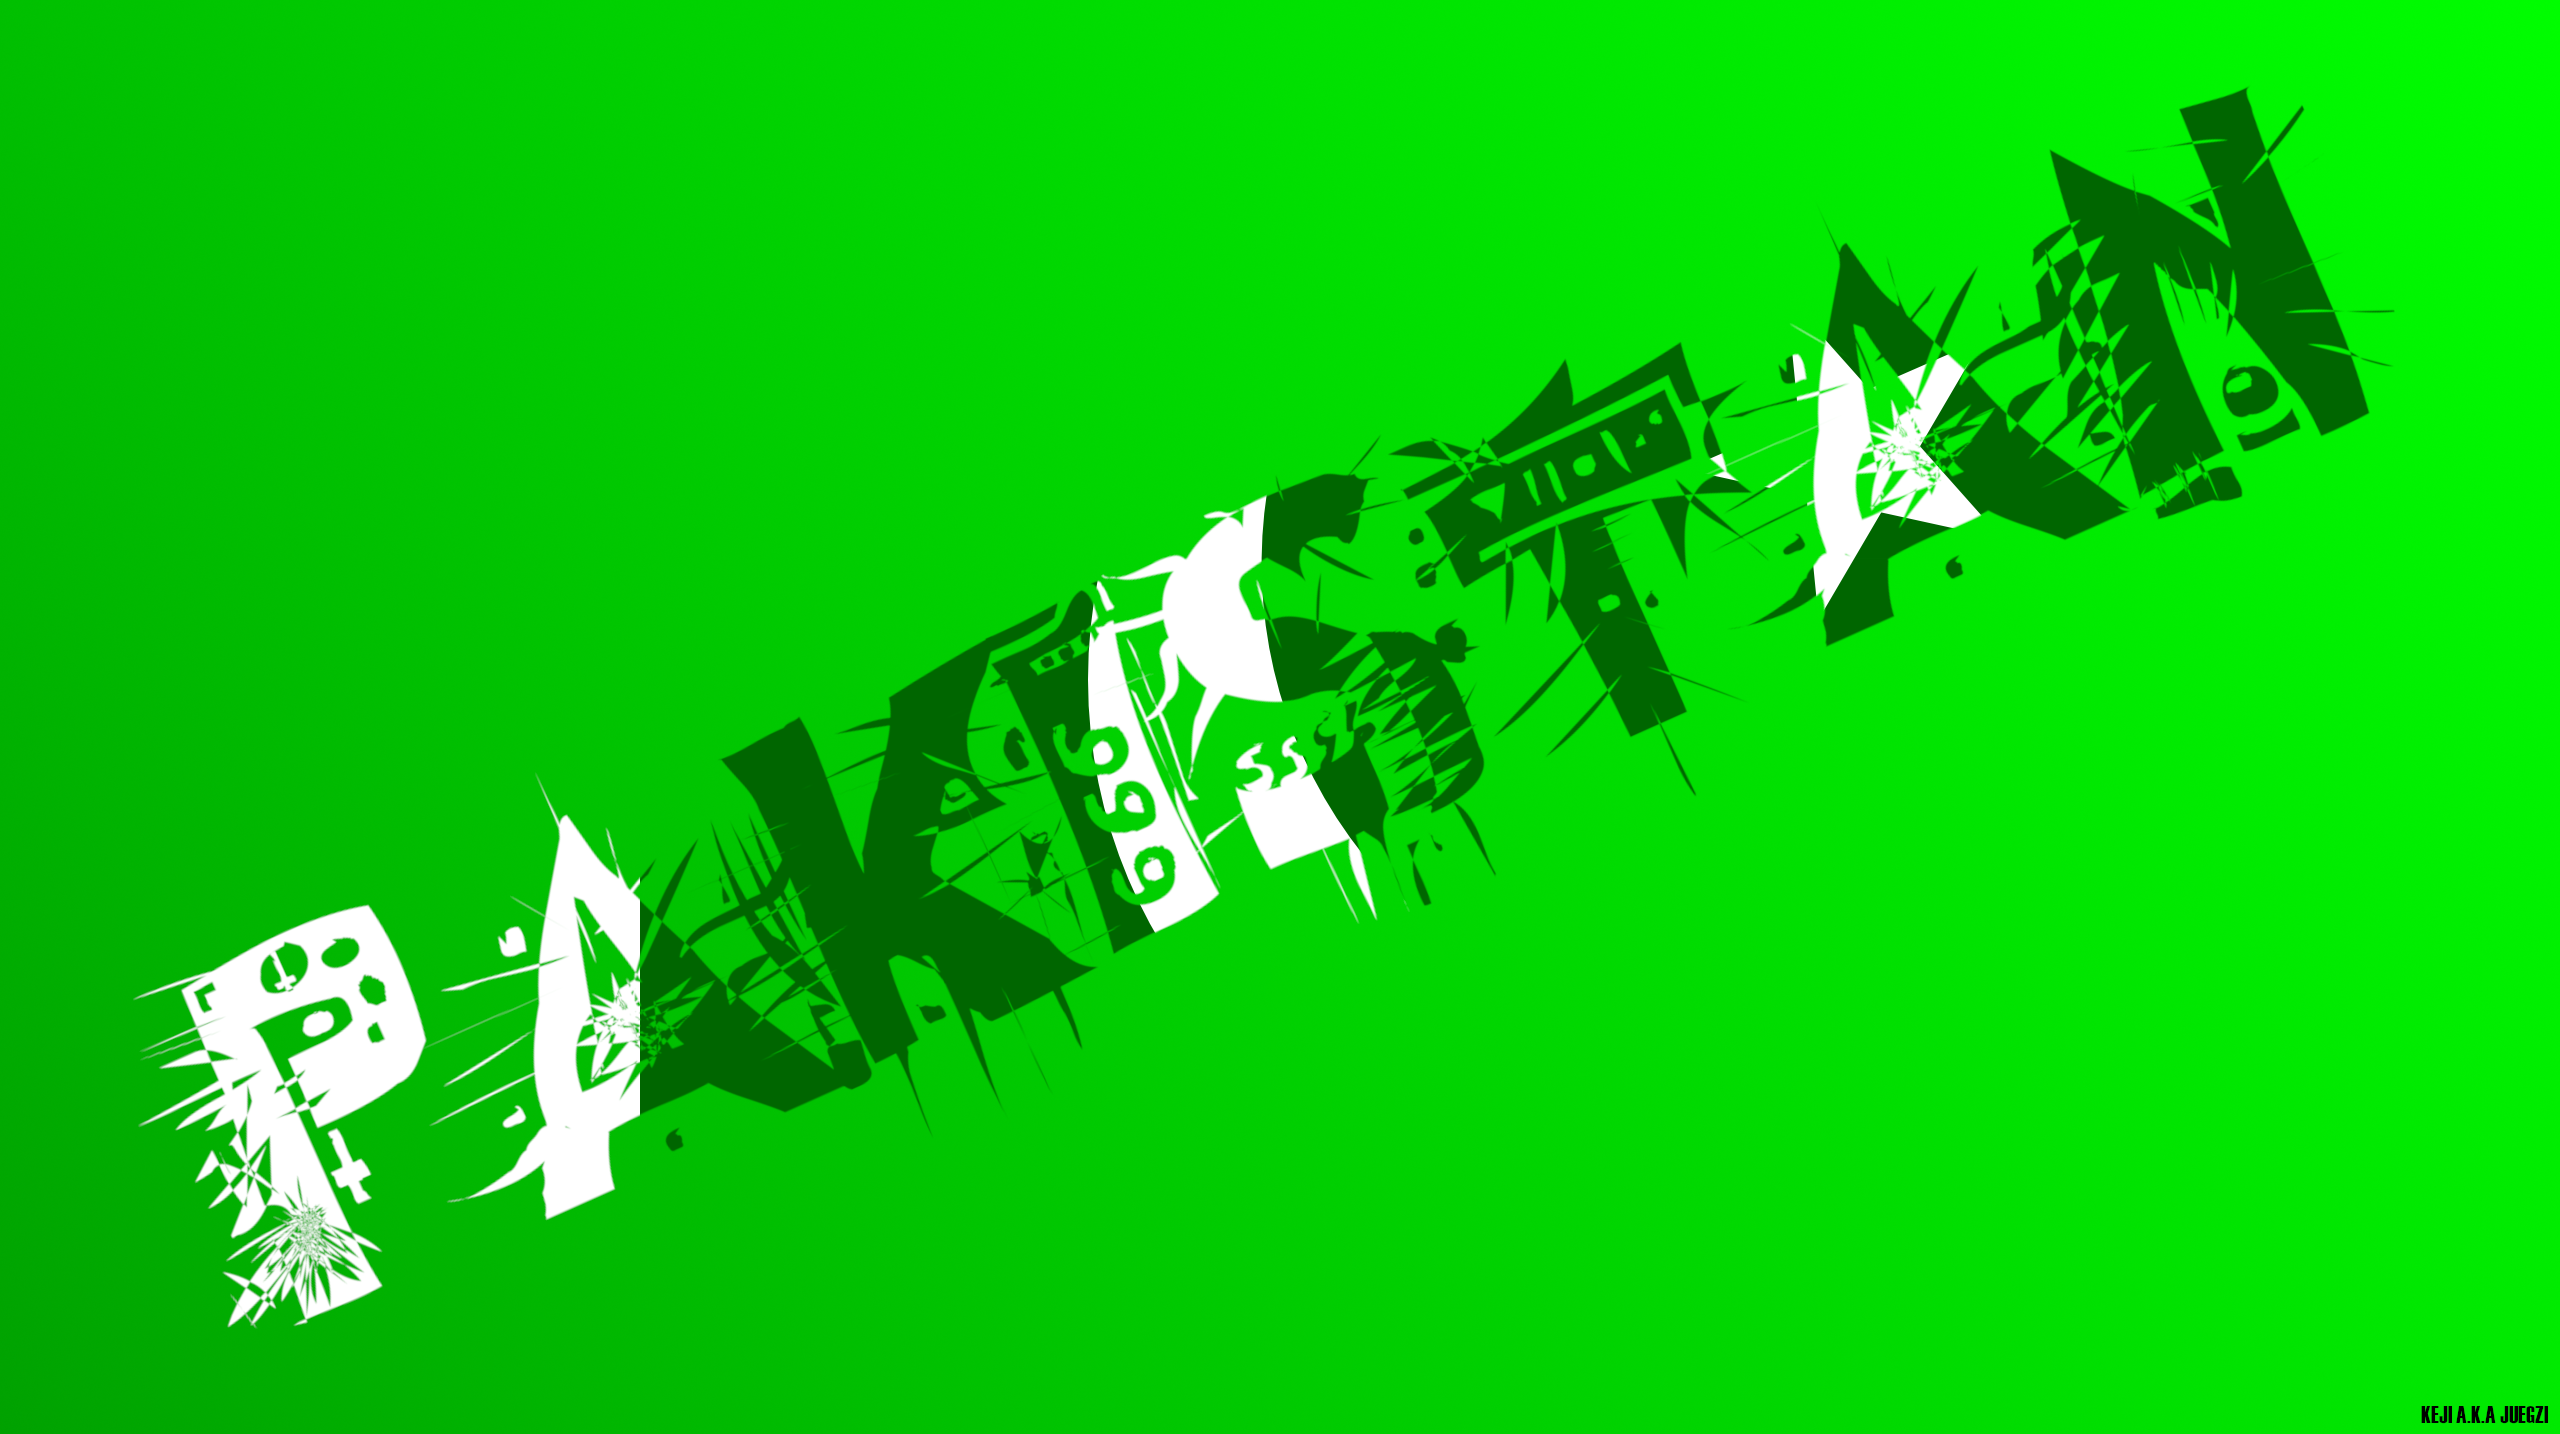 K Word Wallpaper Hd Posted By John Sellers